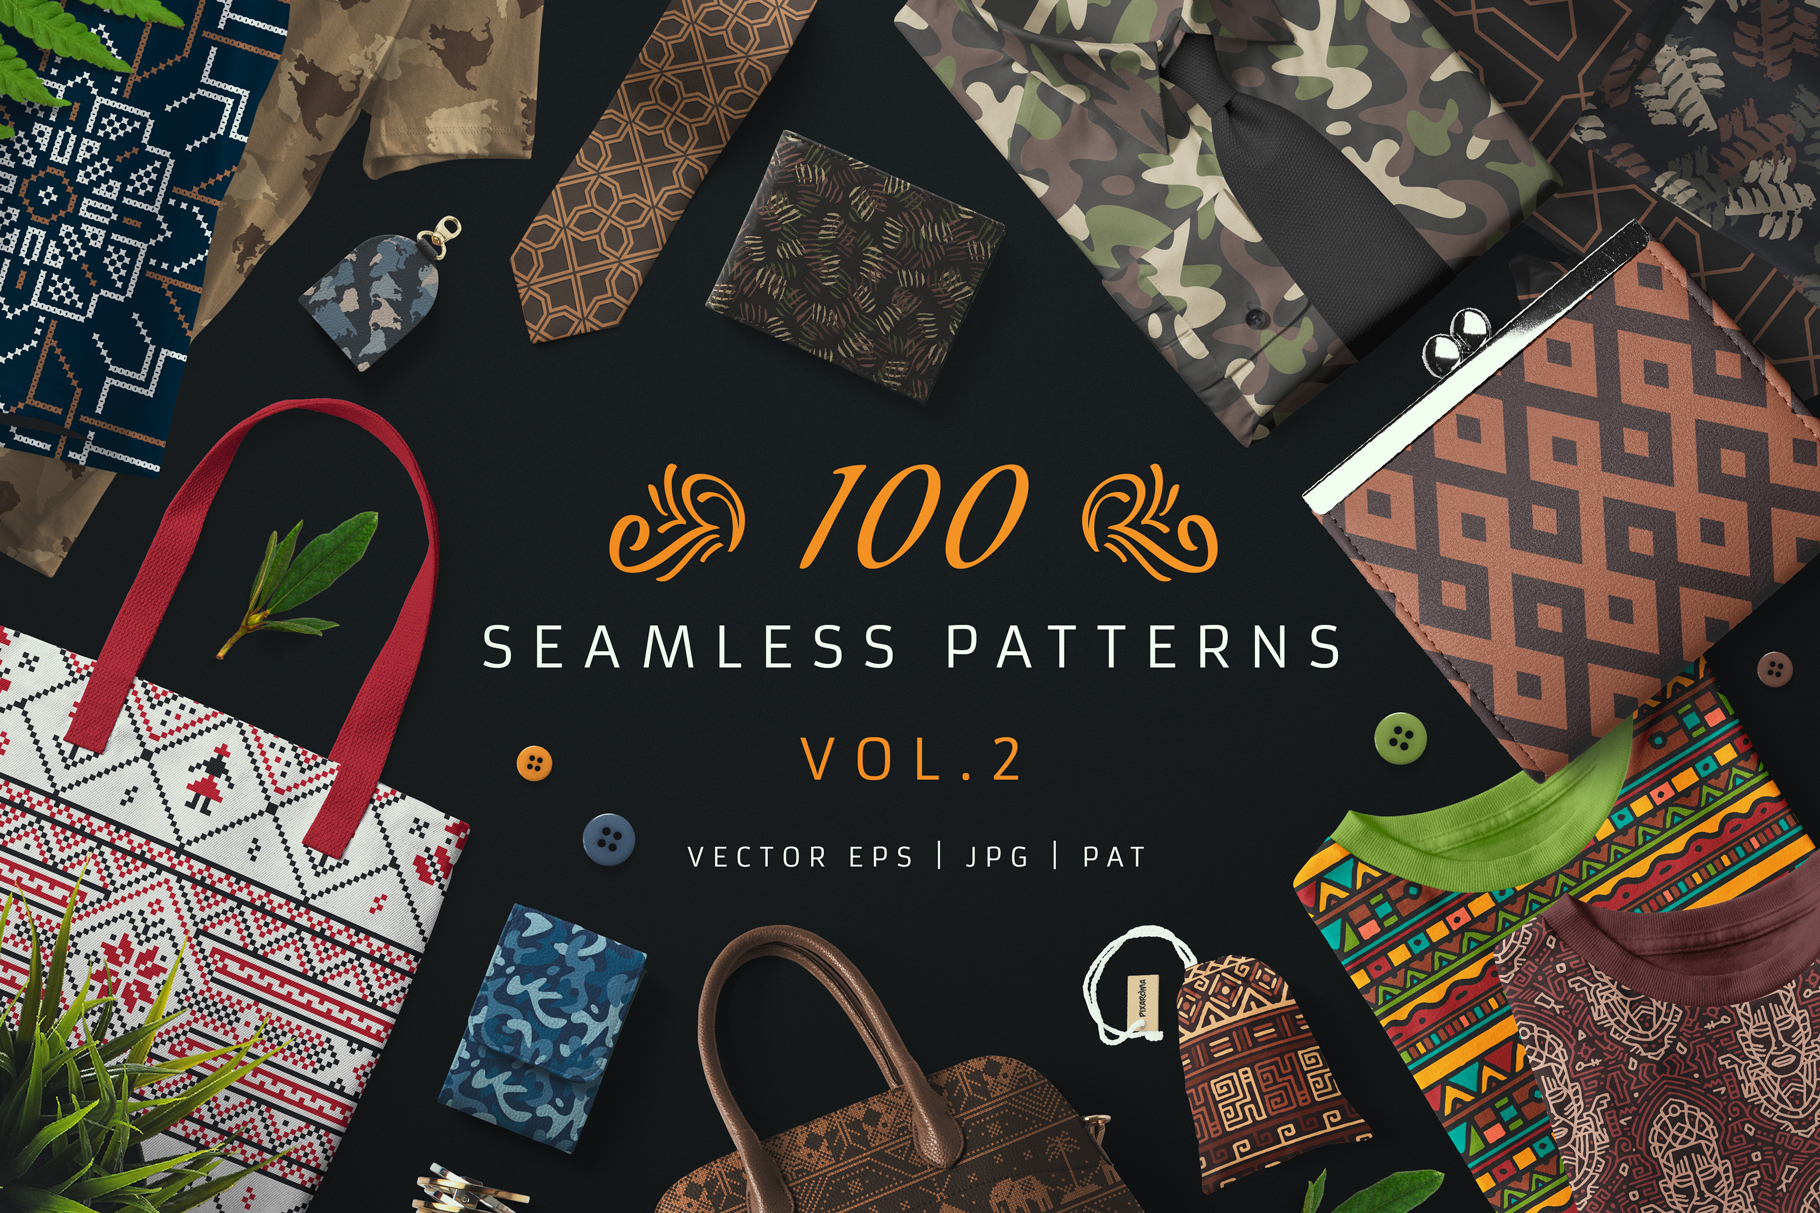 Download Free 100 Seamless Patterns Vol 2 Graphic By Pixaroma Creative Fabrica for Cricut Explore, Silhouette and other cutting machines.